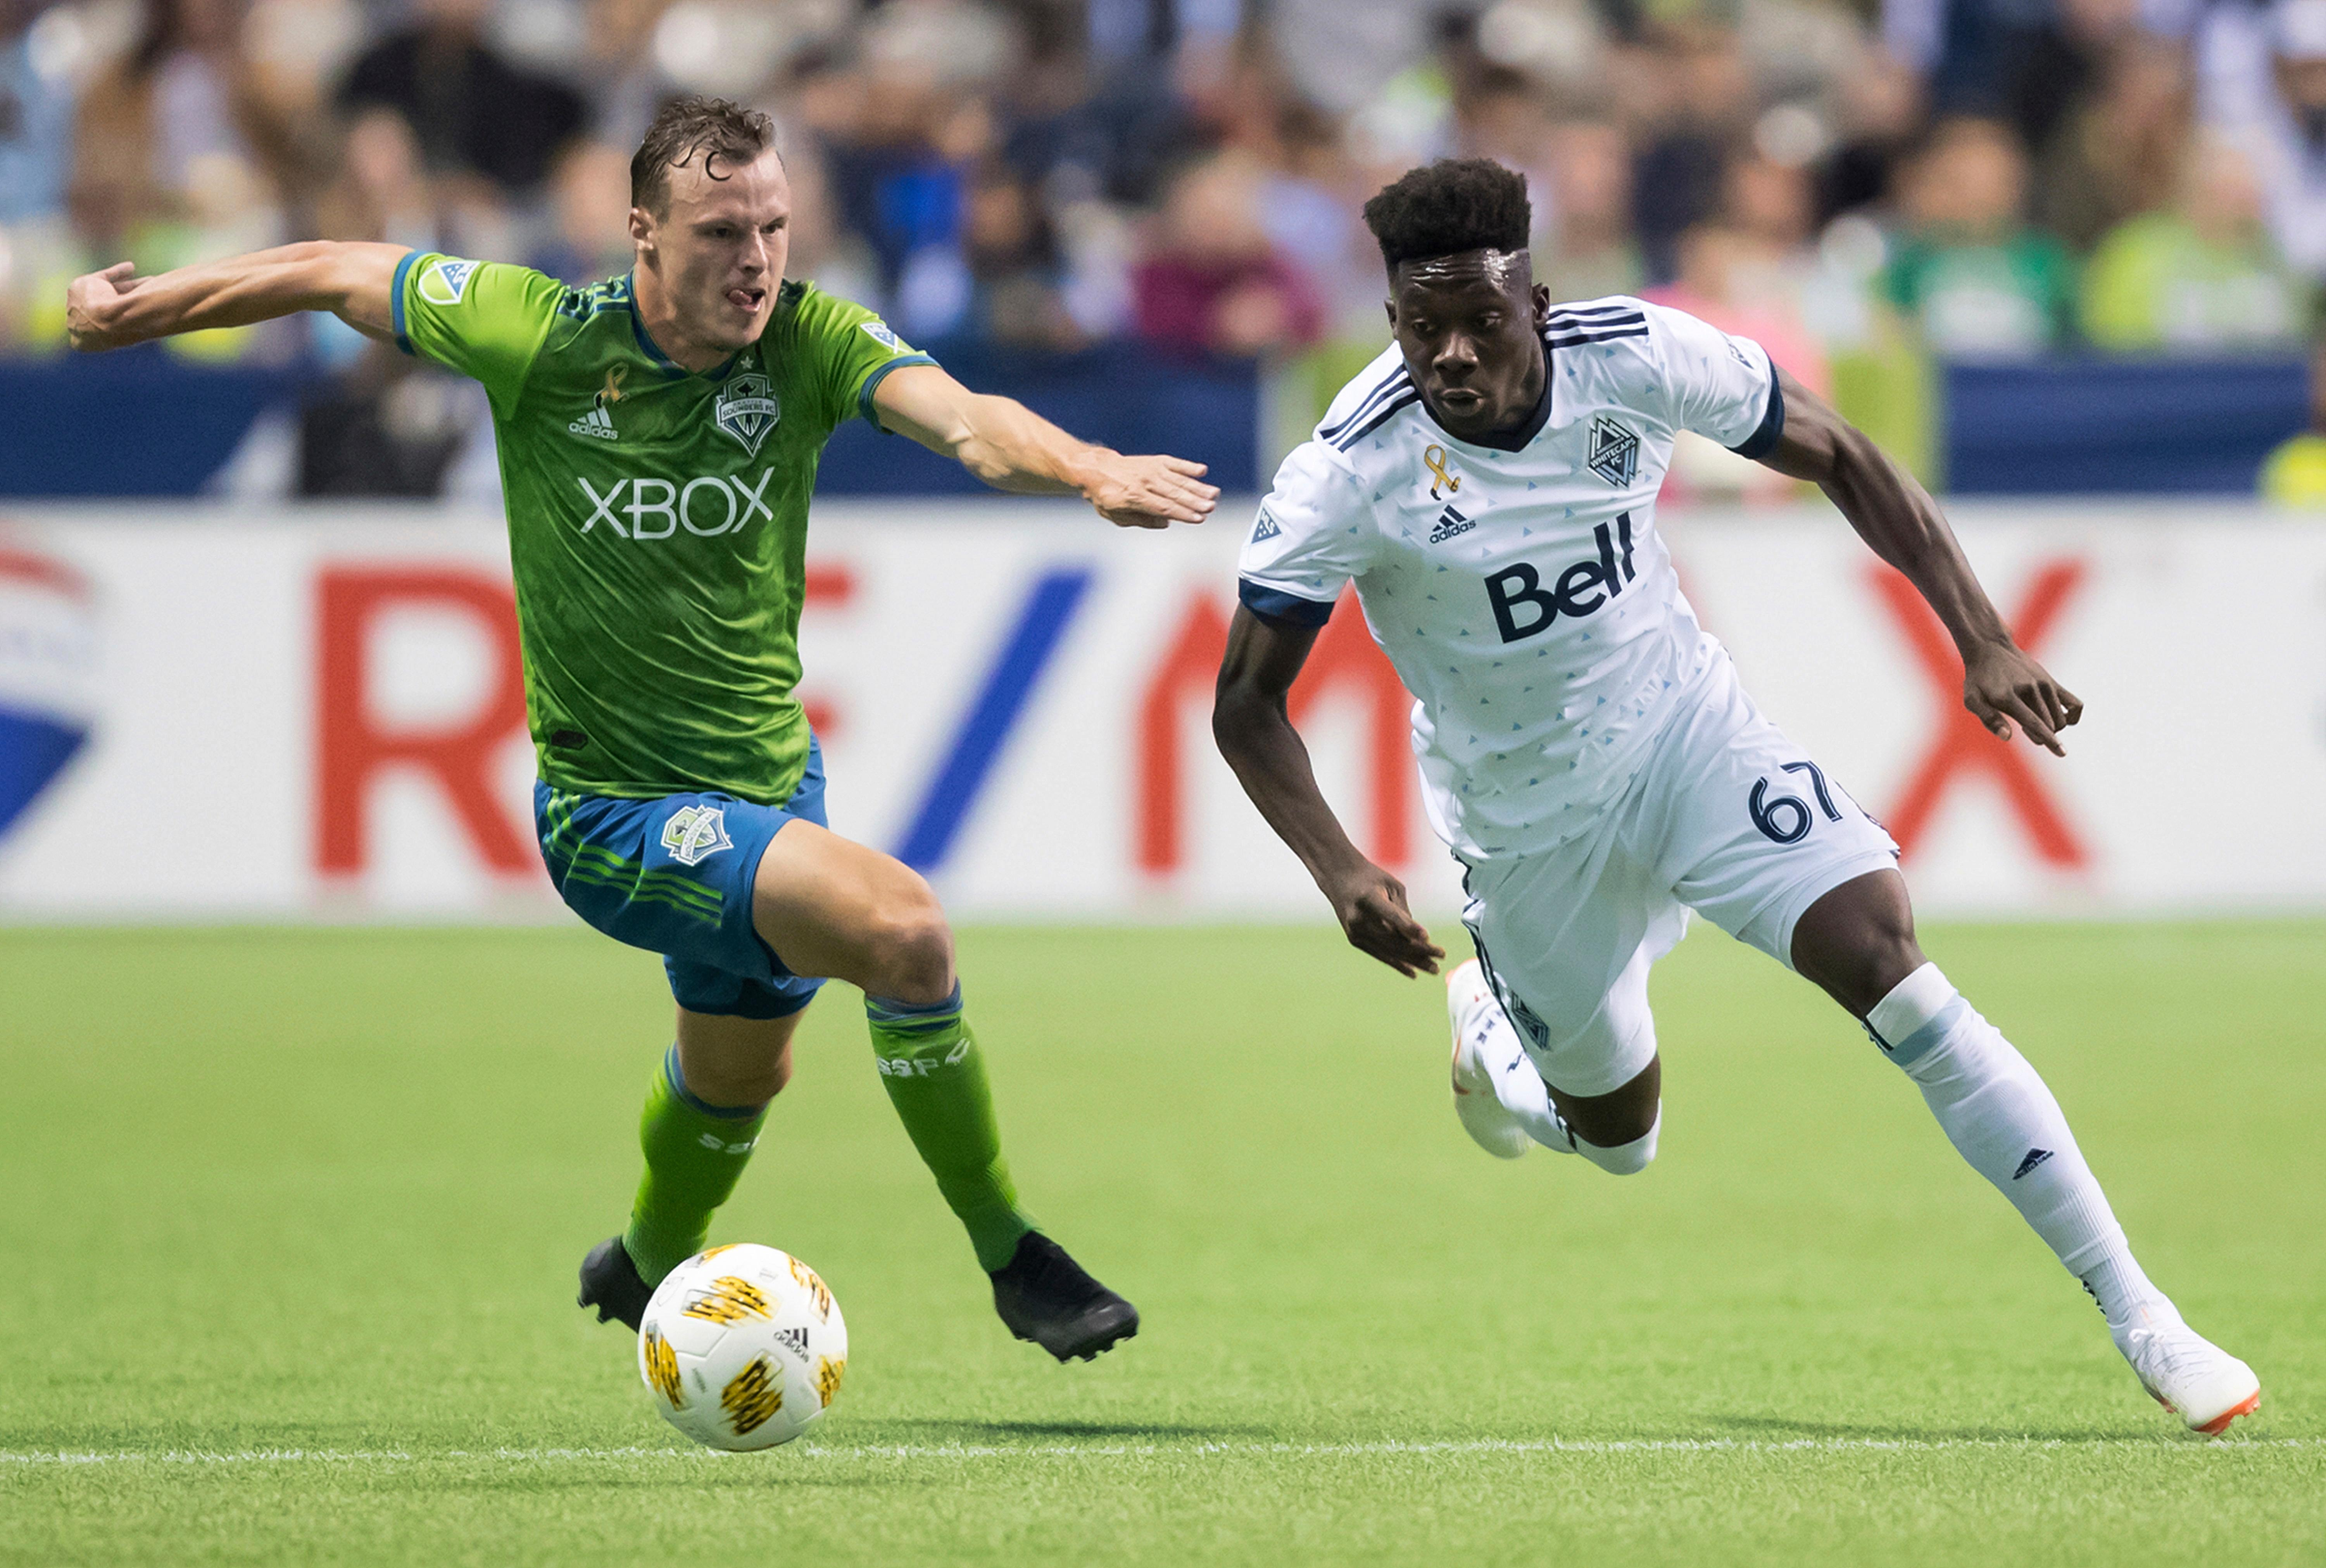 Vancouver Whitecaps' Alphonso Davies, right, runs past Seattle Sounders' Brad Smith with the ball during the first half of an MLS soccer match, Saturday, Sept. 15, 2018, in Vancouver, British Columbia. (Darryl Dyck/The Canadian Press via AP)